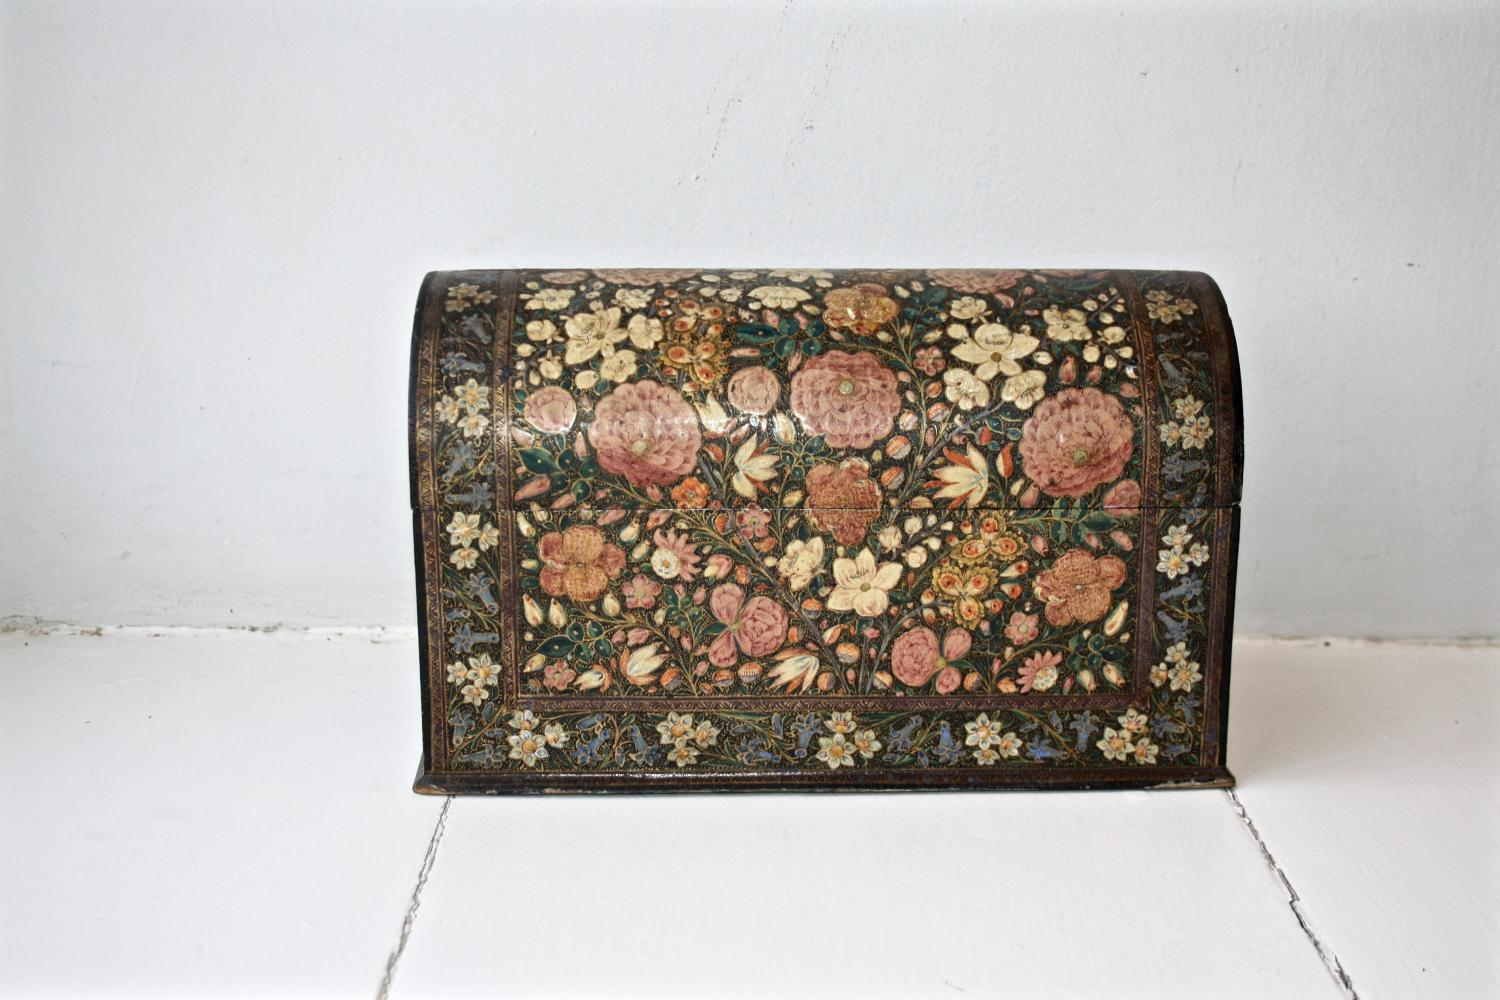 Floral domed box